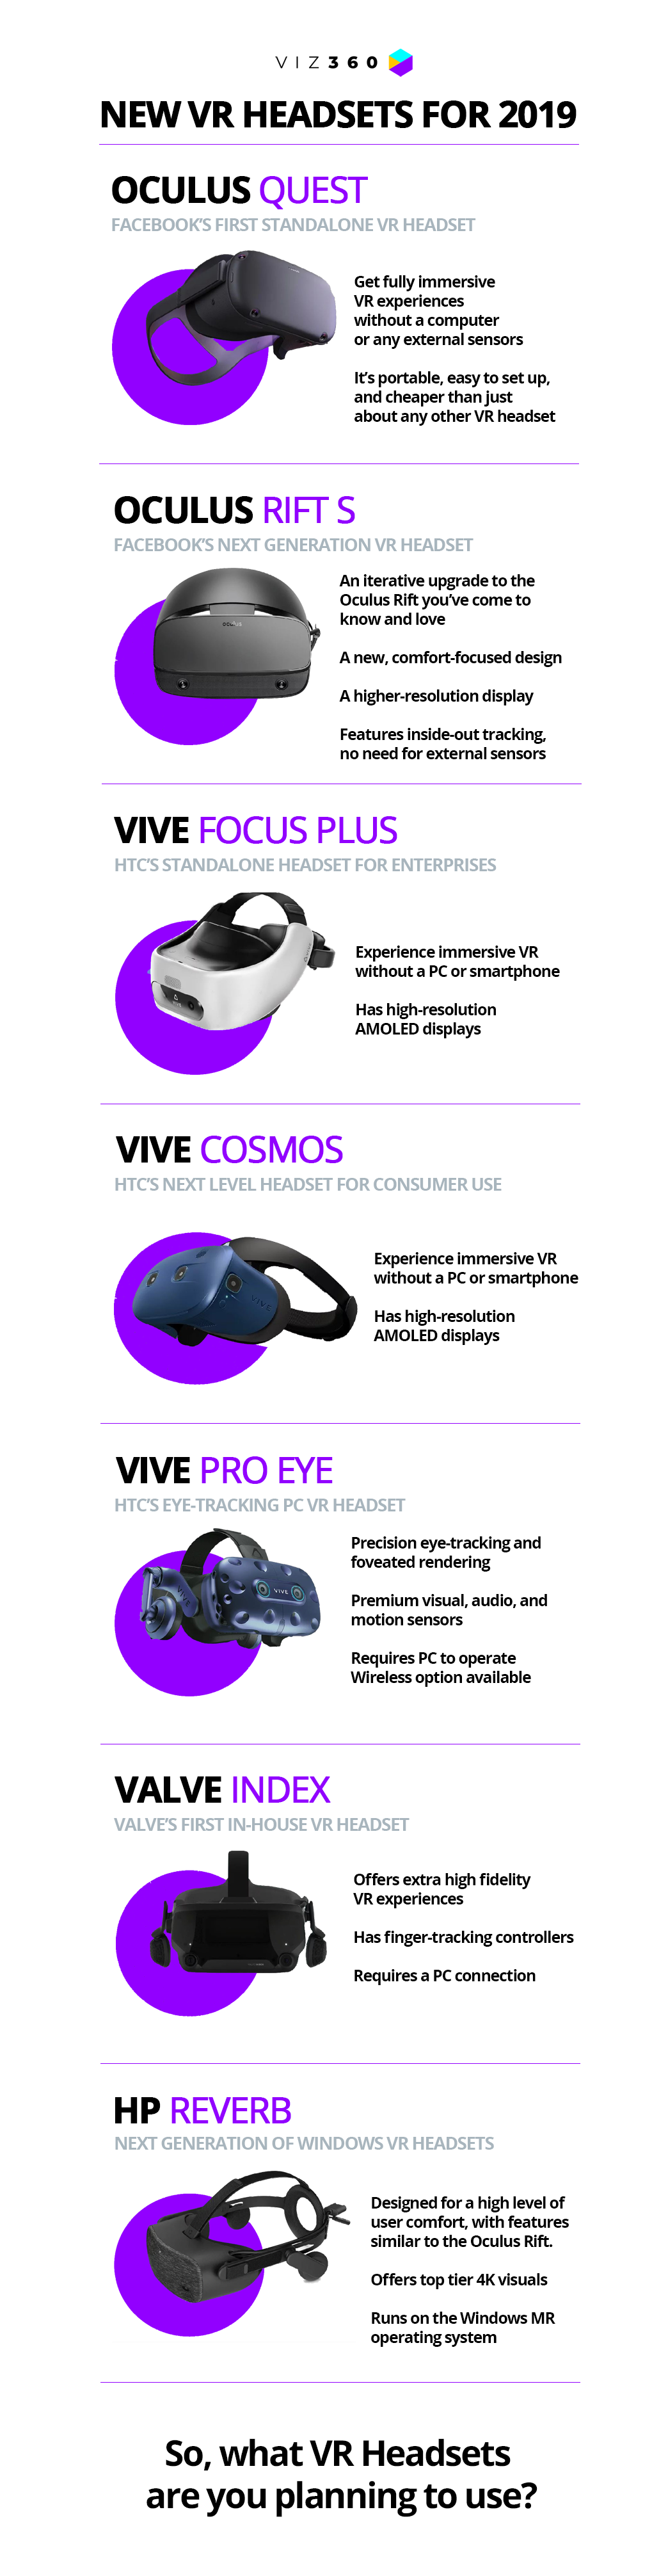 7 Most Recommended New VR Headsets for 2019